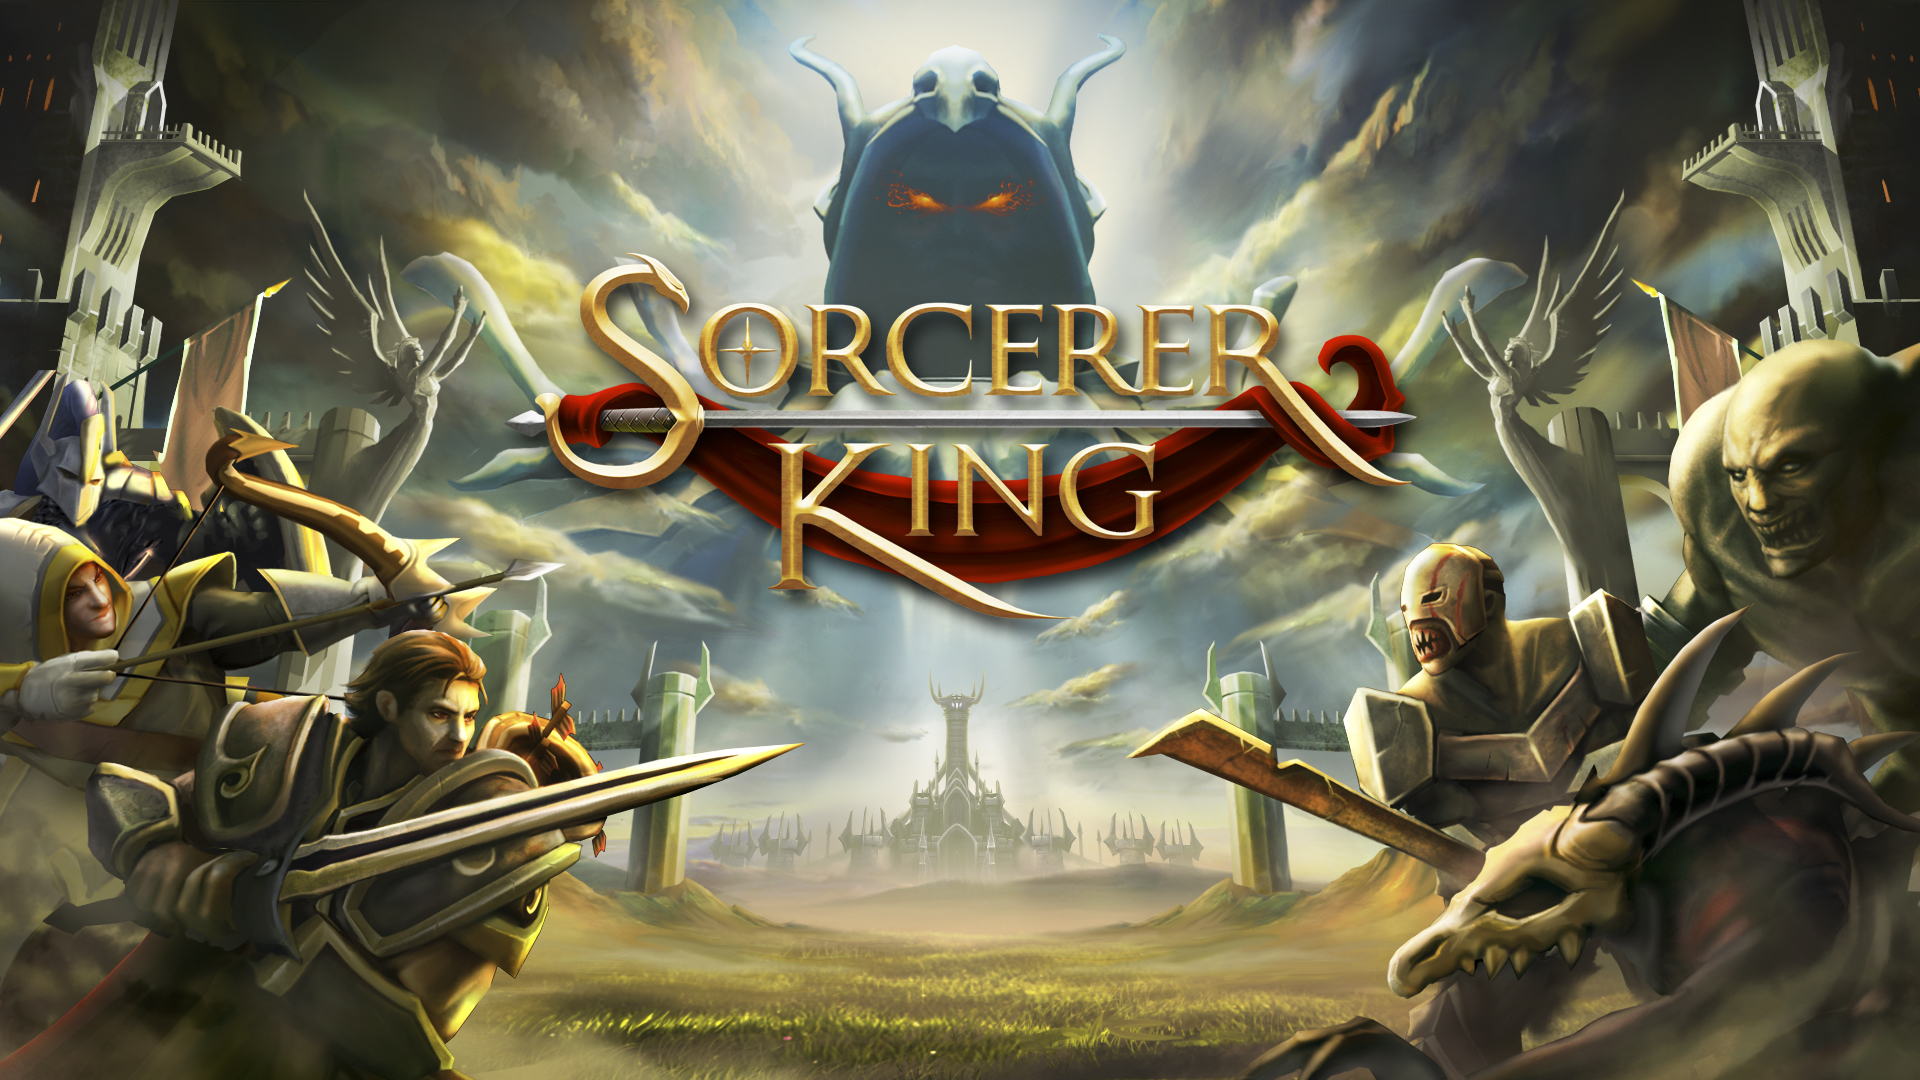 Sorcerer King telecharger gratuit de PC et Torrent